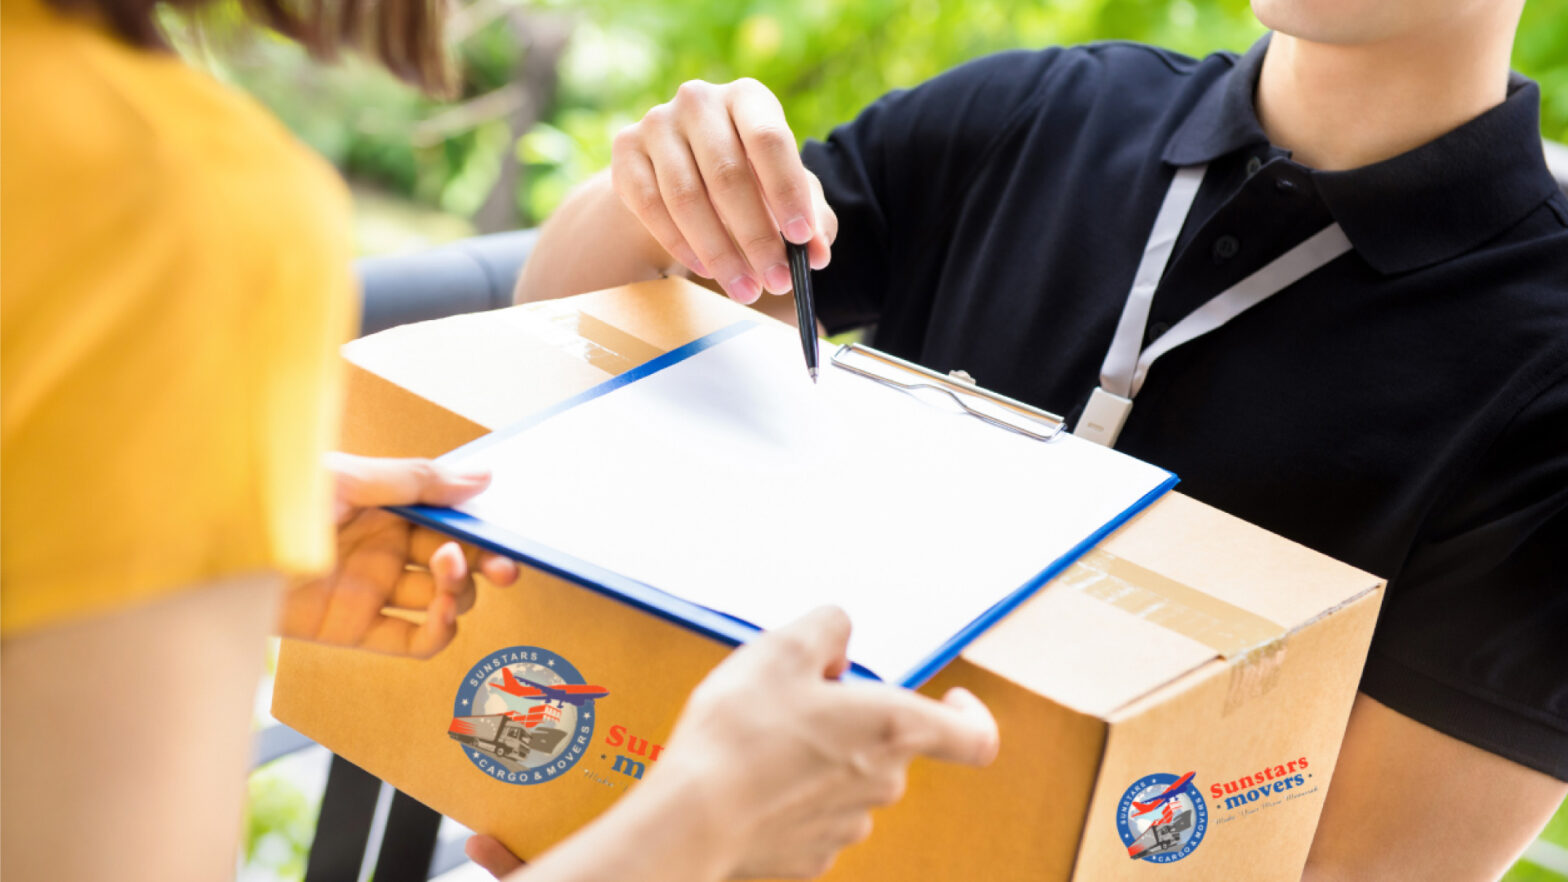 Local movers in Abudhabi at sunstars movers